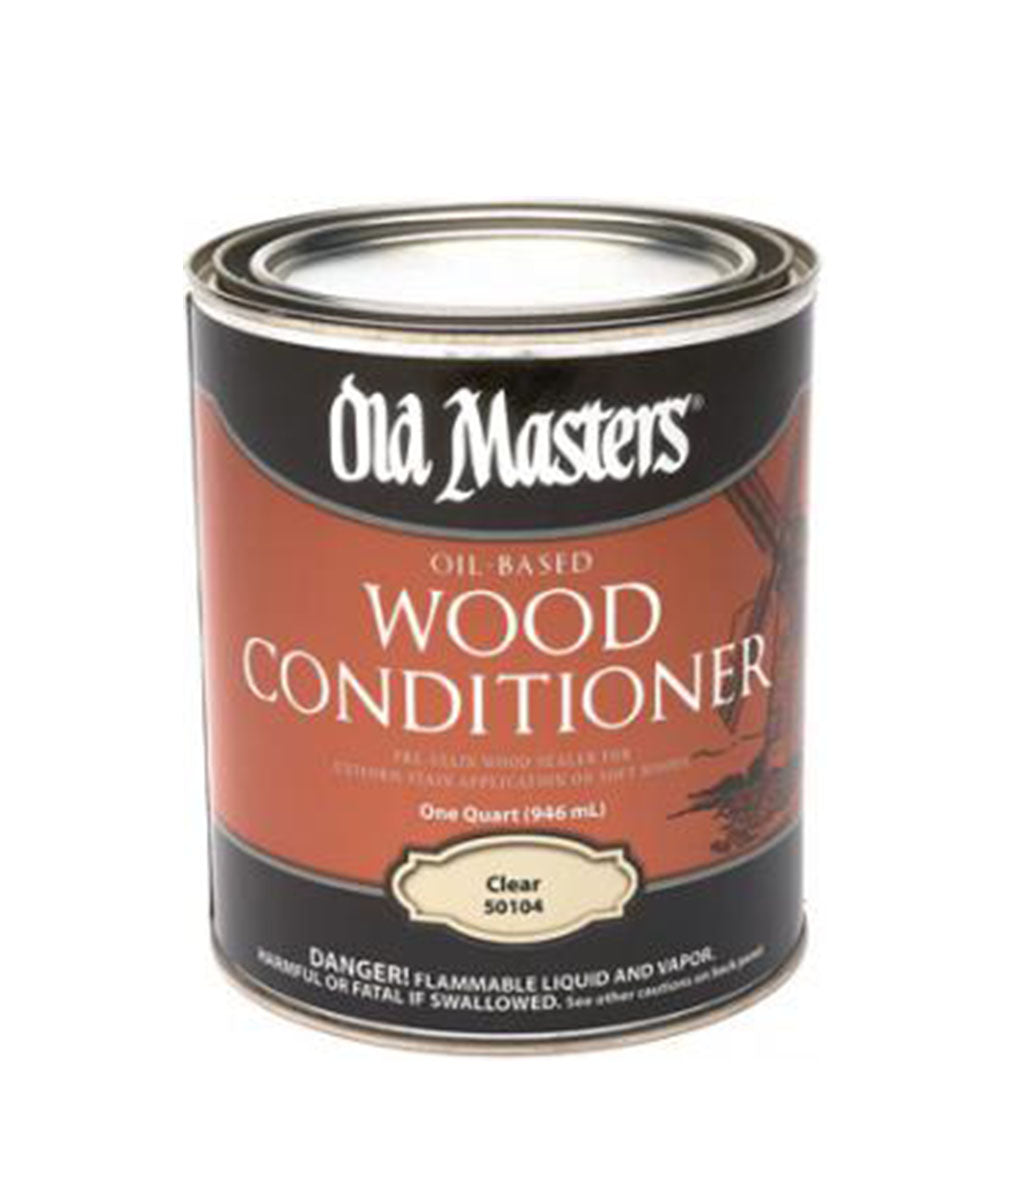 Old Masters Wood Conditioner, available at Clement's Paint in Austin, TX.